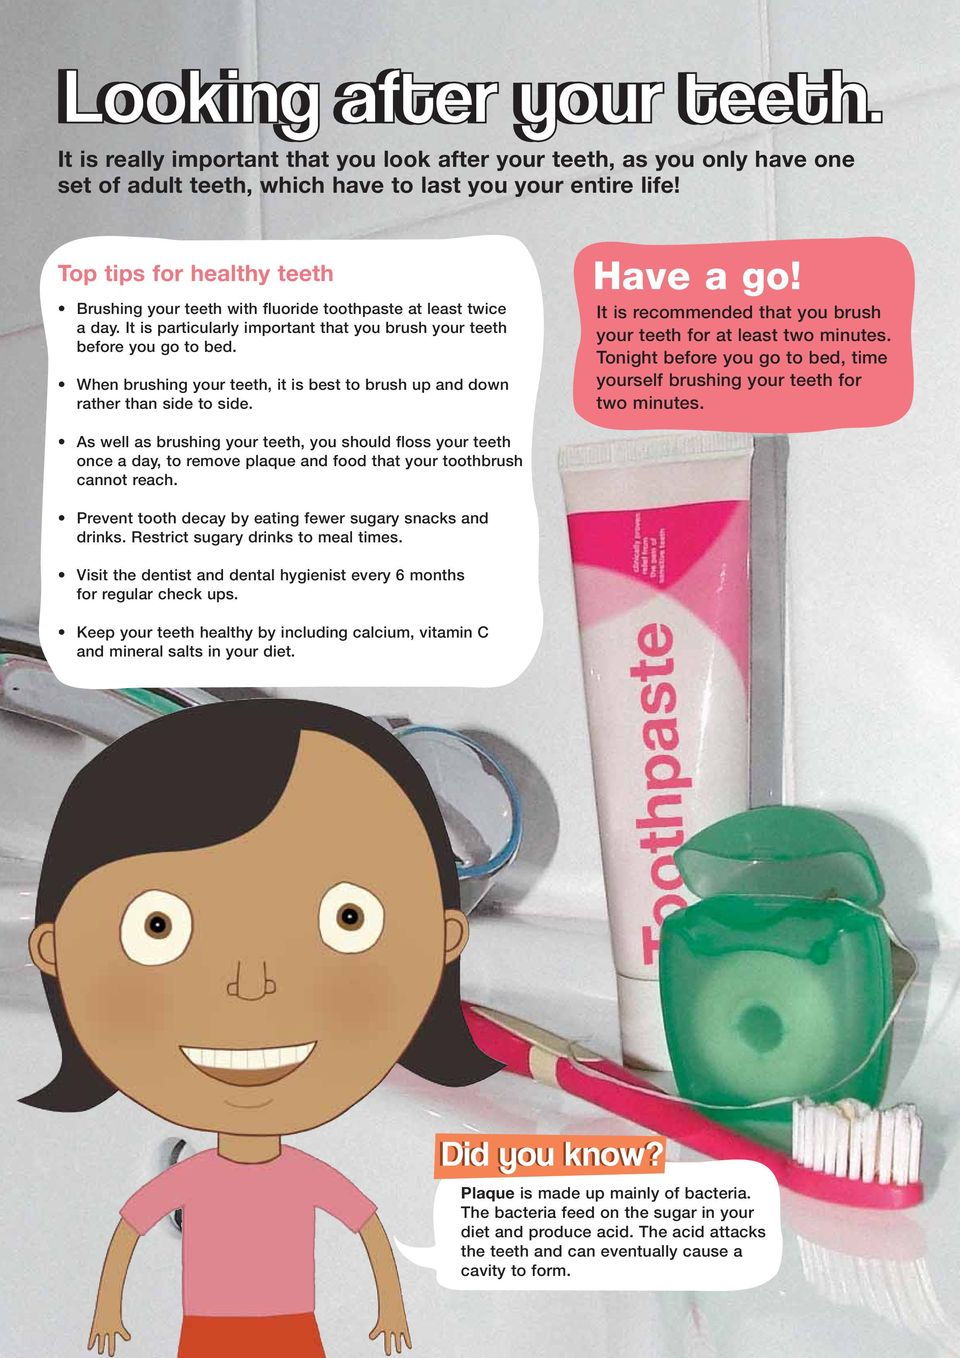 When brushing your teeth, it is best to brush up and down rather than side to side. Have a go! It is recommended that you brush your teeth for at least two minutes.